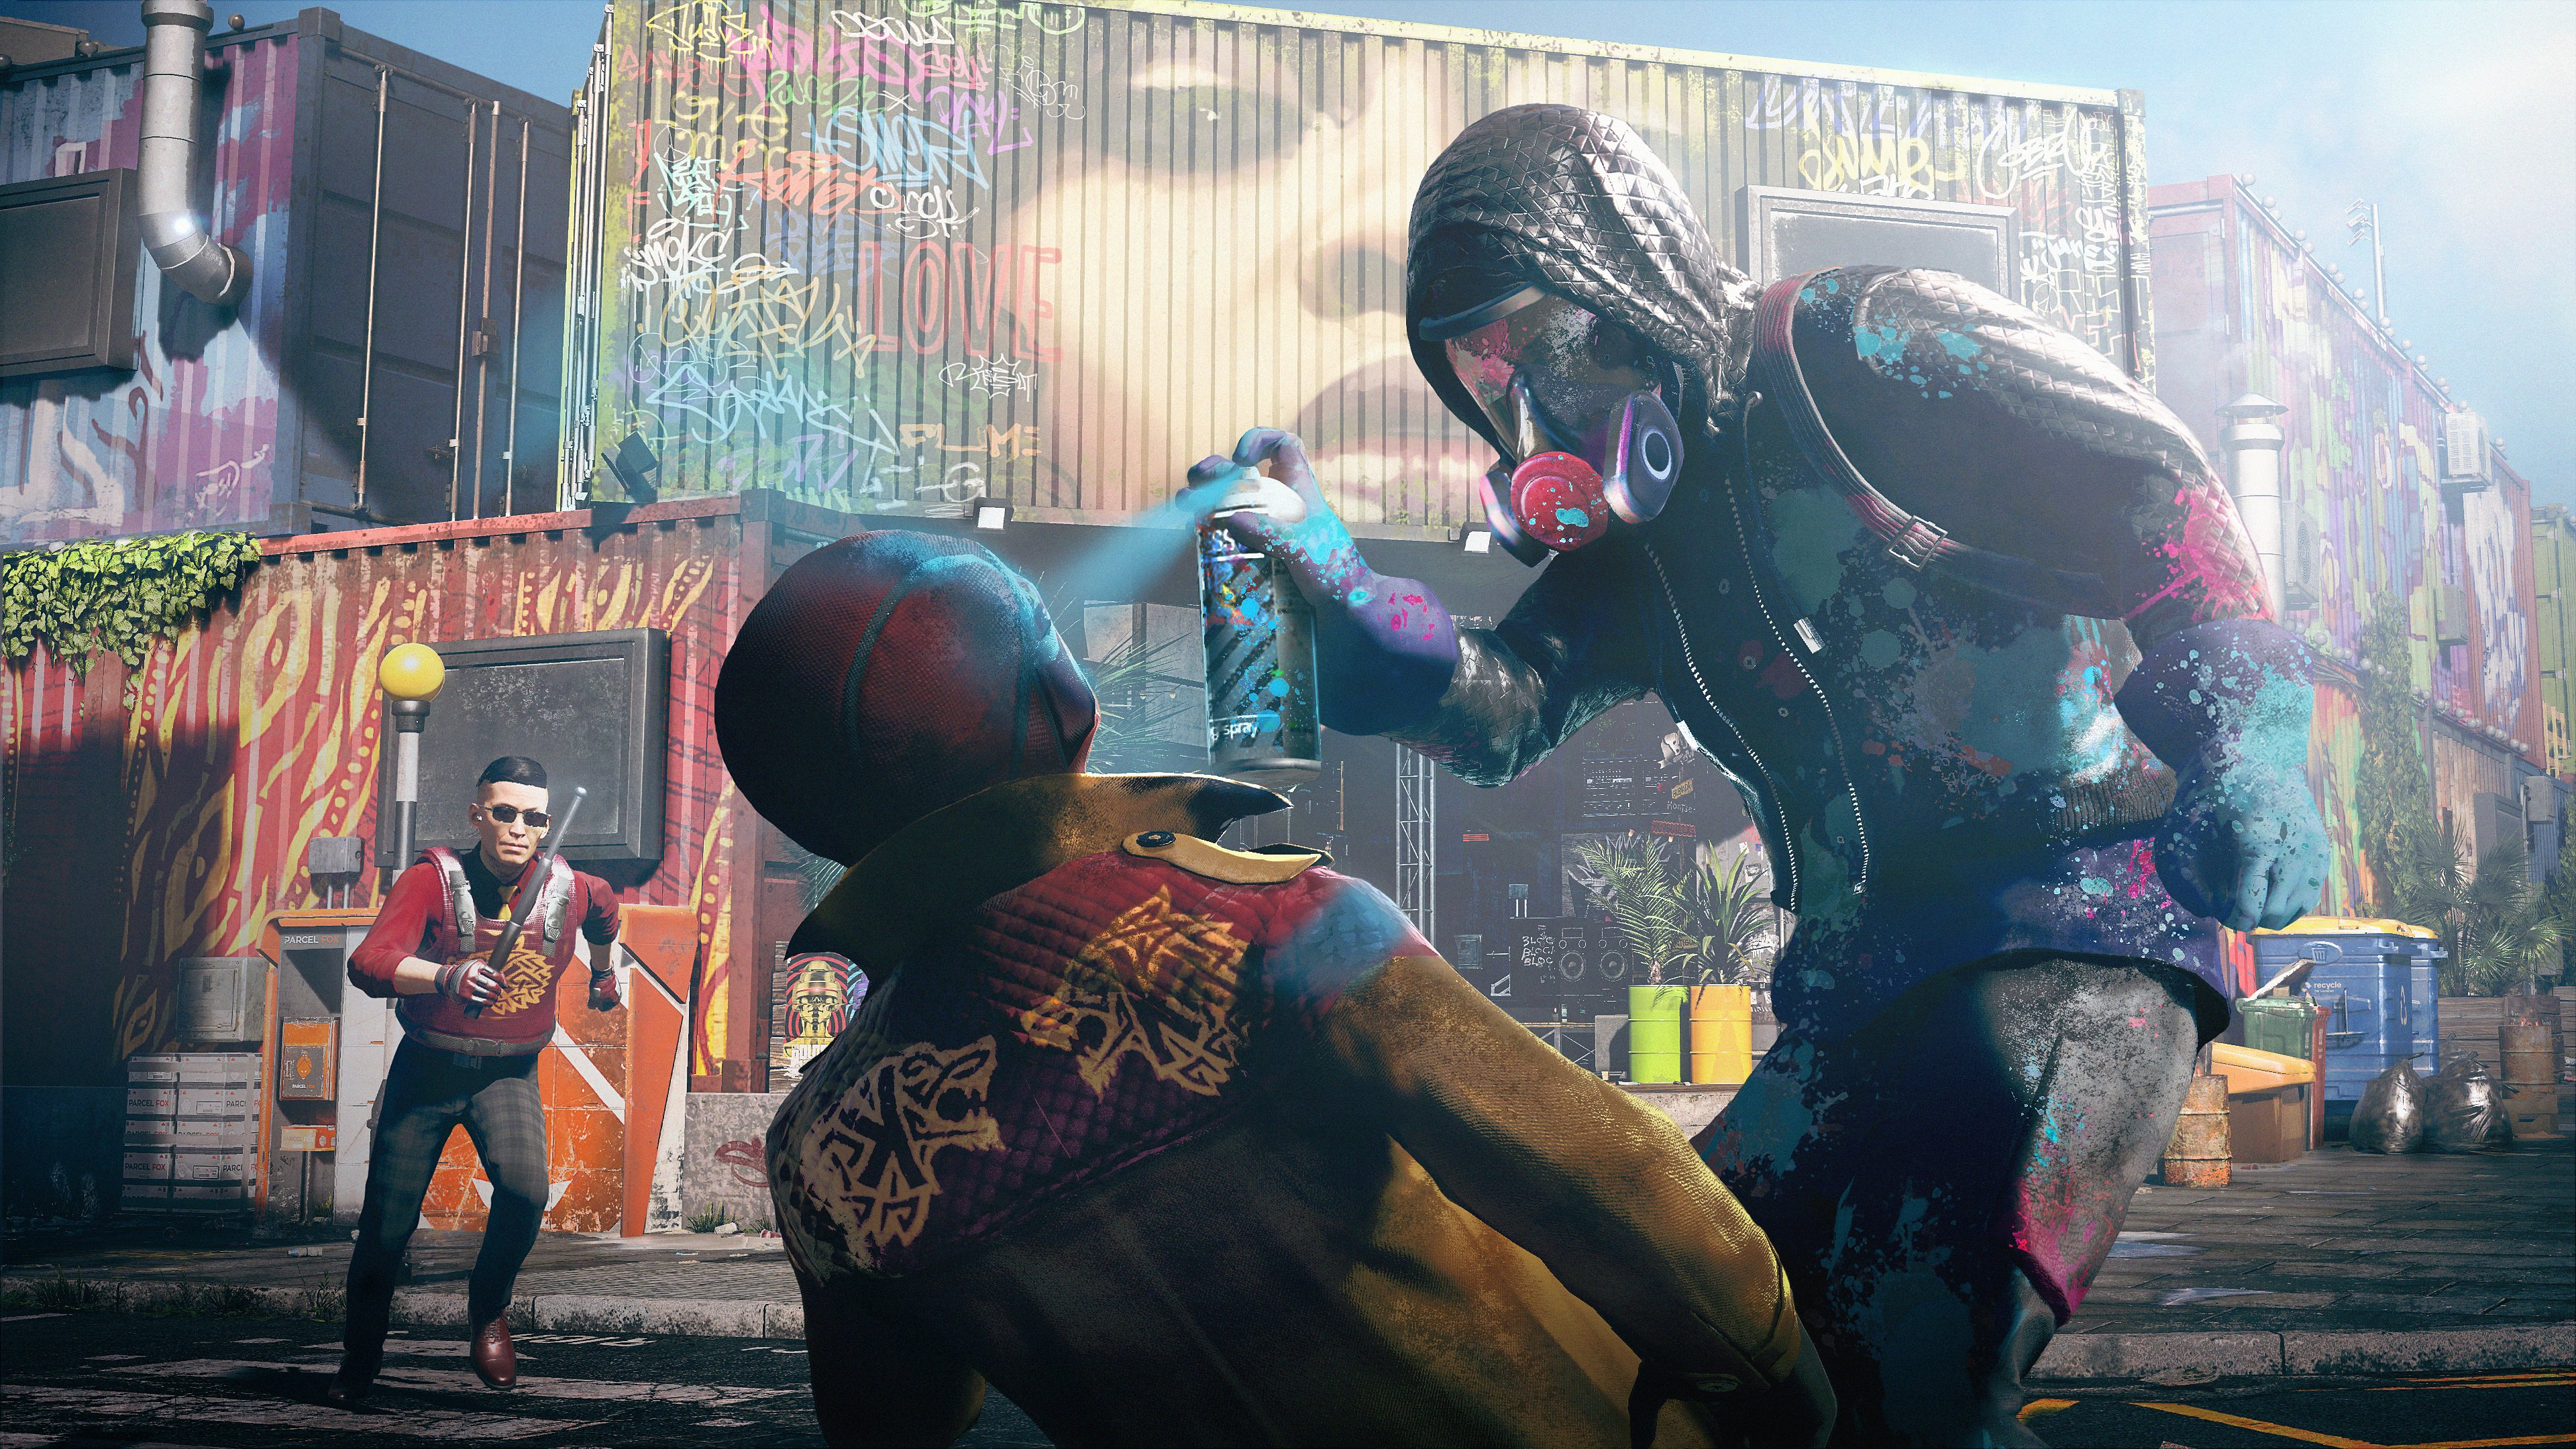 Download Watch Dogs Legion PS5-BigBlueBox PPSA-01487 Full Direct Links DLGAMES - Download All Your Games For Free